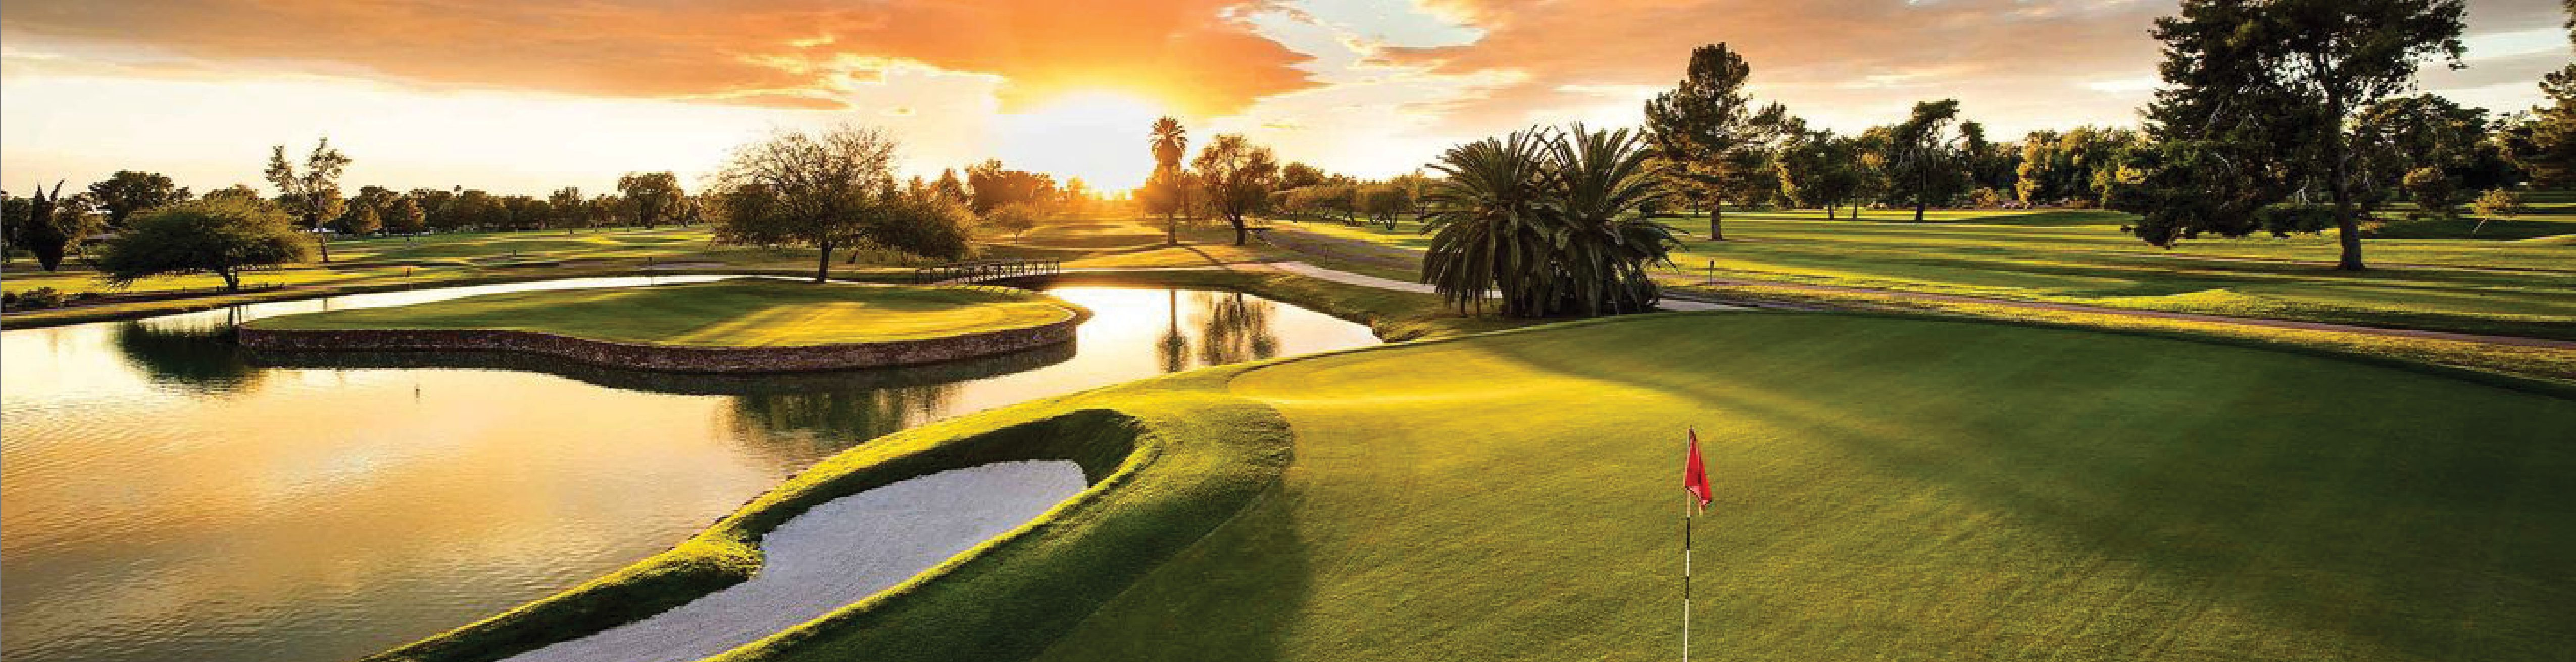 WESTMARC's Golf Classic is an excellent opportunity for golfers - and non-golfers - to spend a day networking, experiencing a fabulous golf course, and enjoying our beautiful weather - all while supporting economic development in the West Valley.